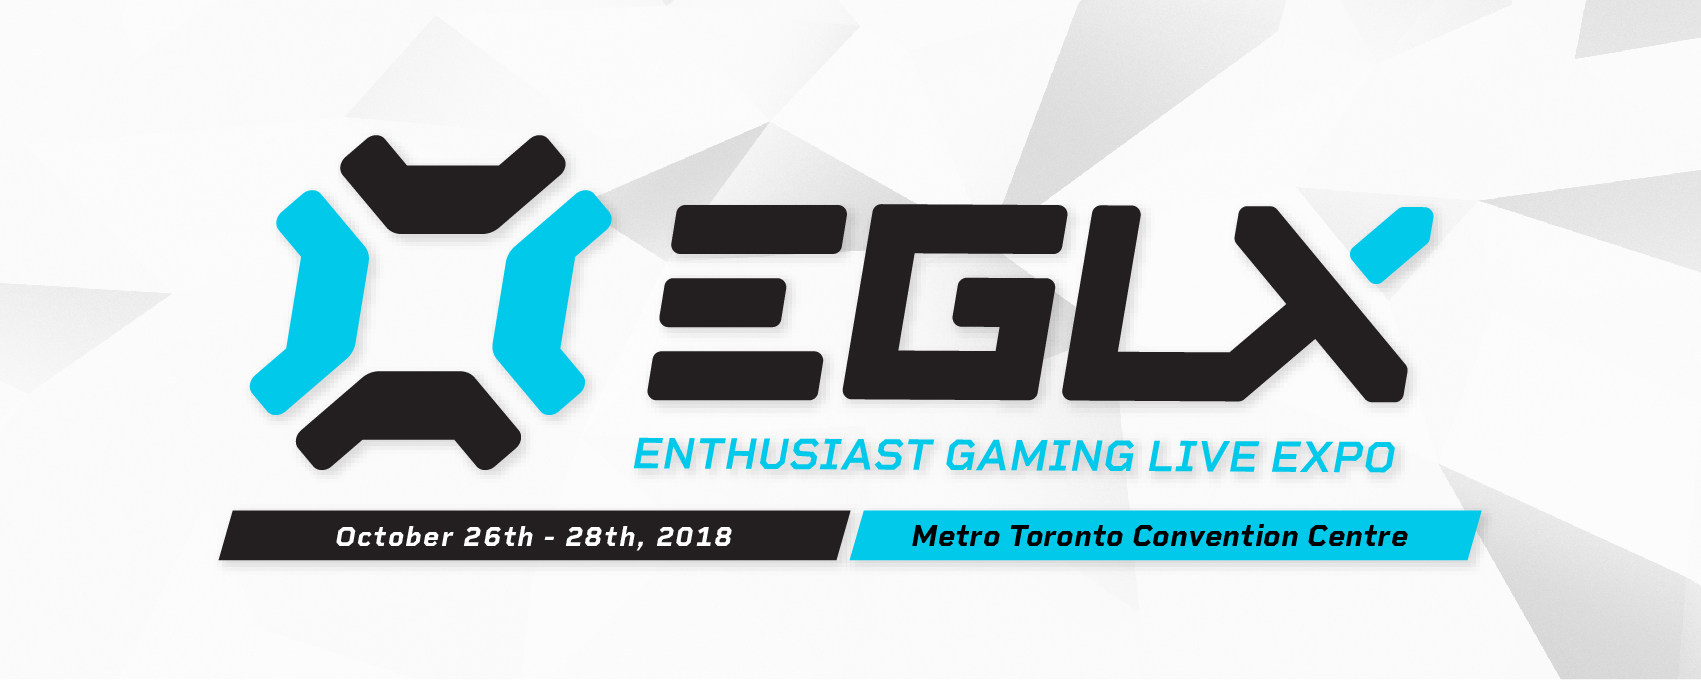 Application for EGLX - Enthusiast Gaming Live Expo (Invited) in Toronto from ShowClix